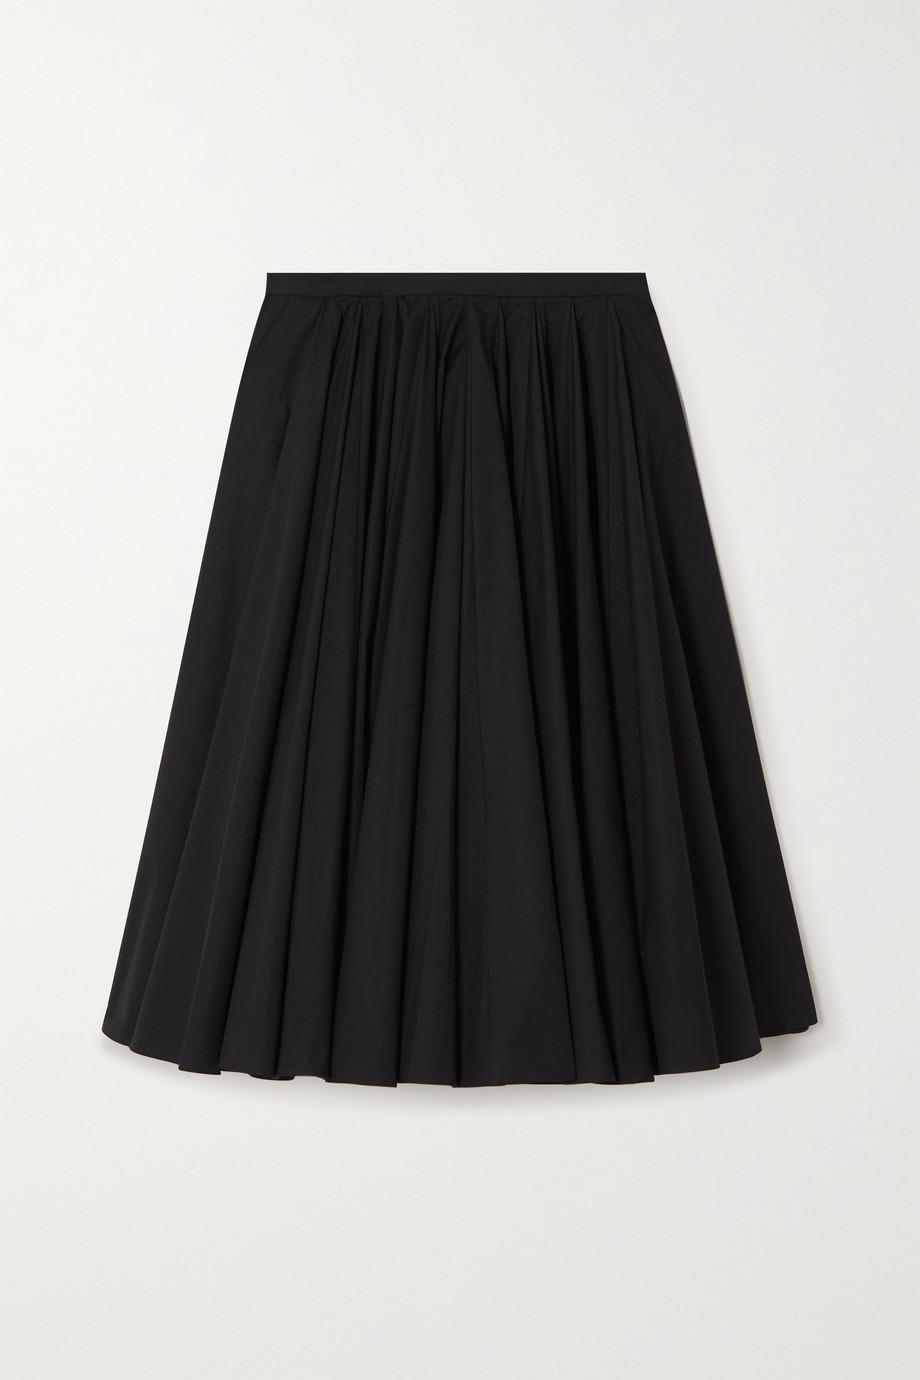 EMILIA WICKSTEAD Lily pleated cotton-poplin skirt